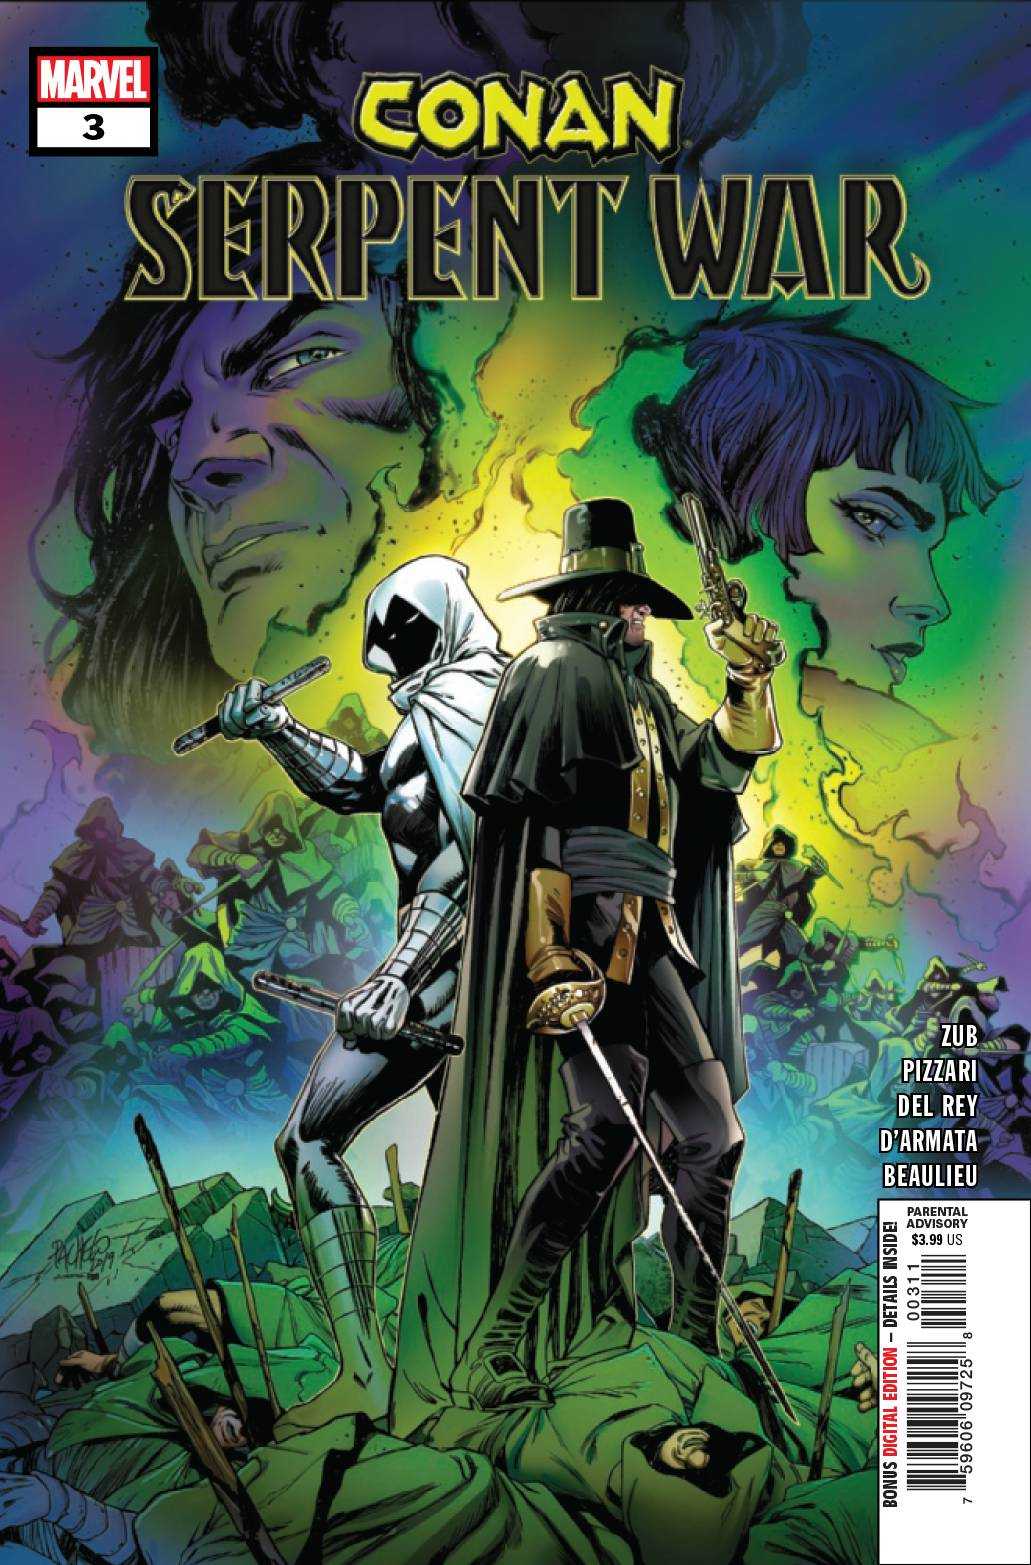 CONAN SERPENT WAR #3 (OF 4)